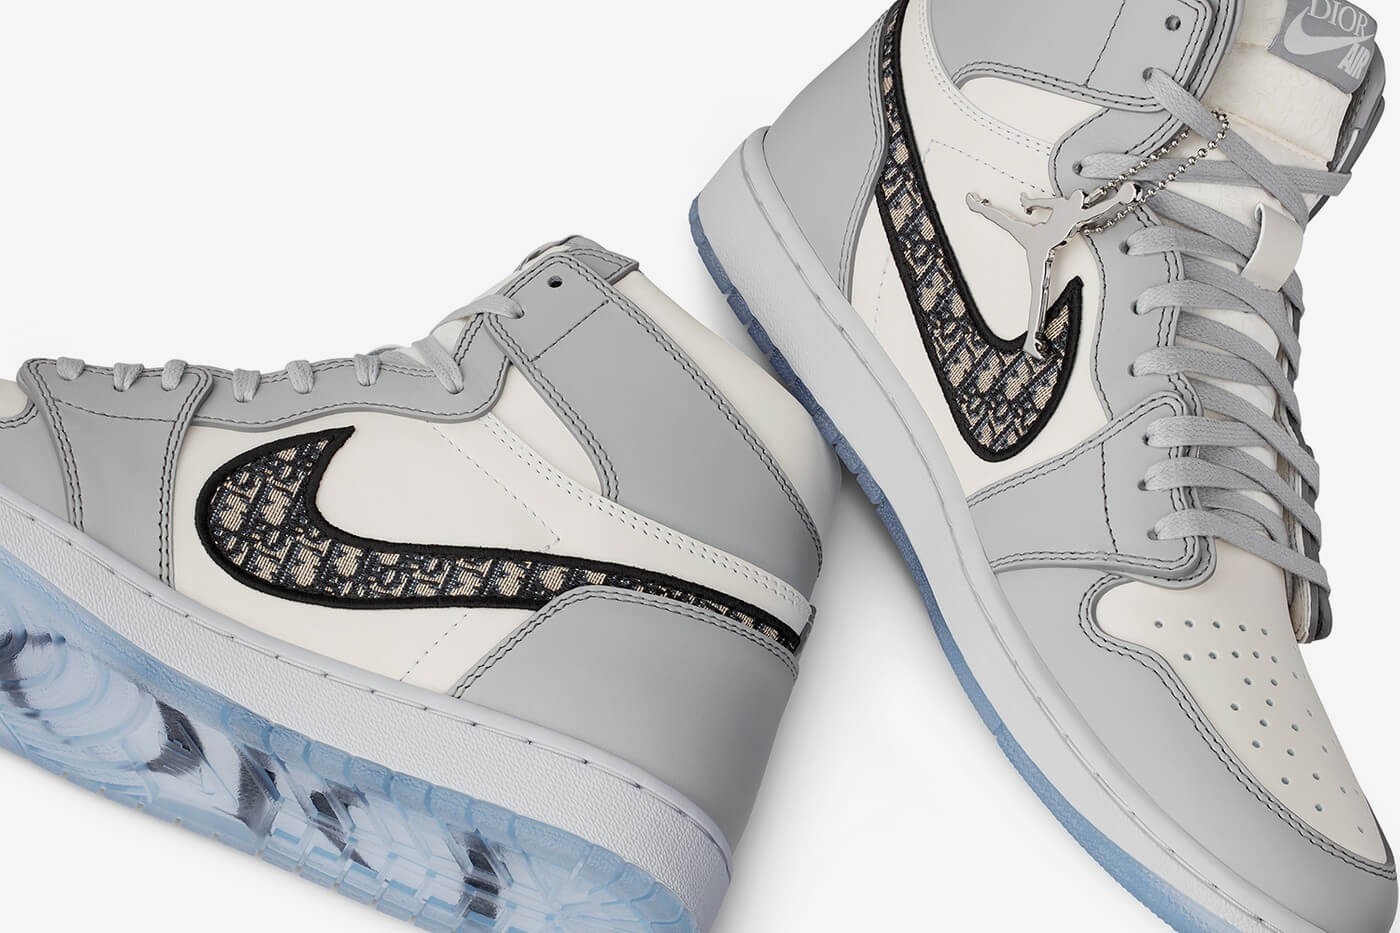 Does The Jordan 1 Fit True To Size